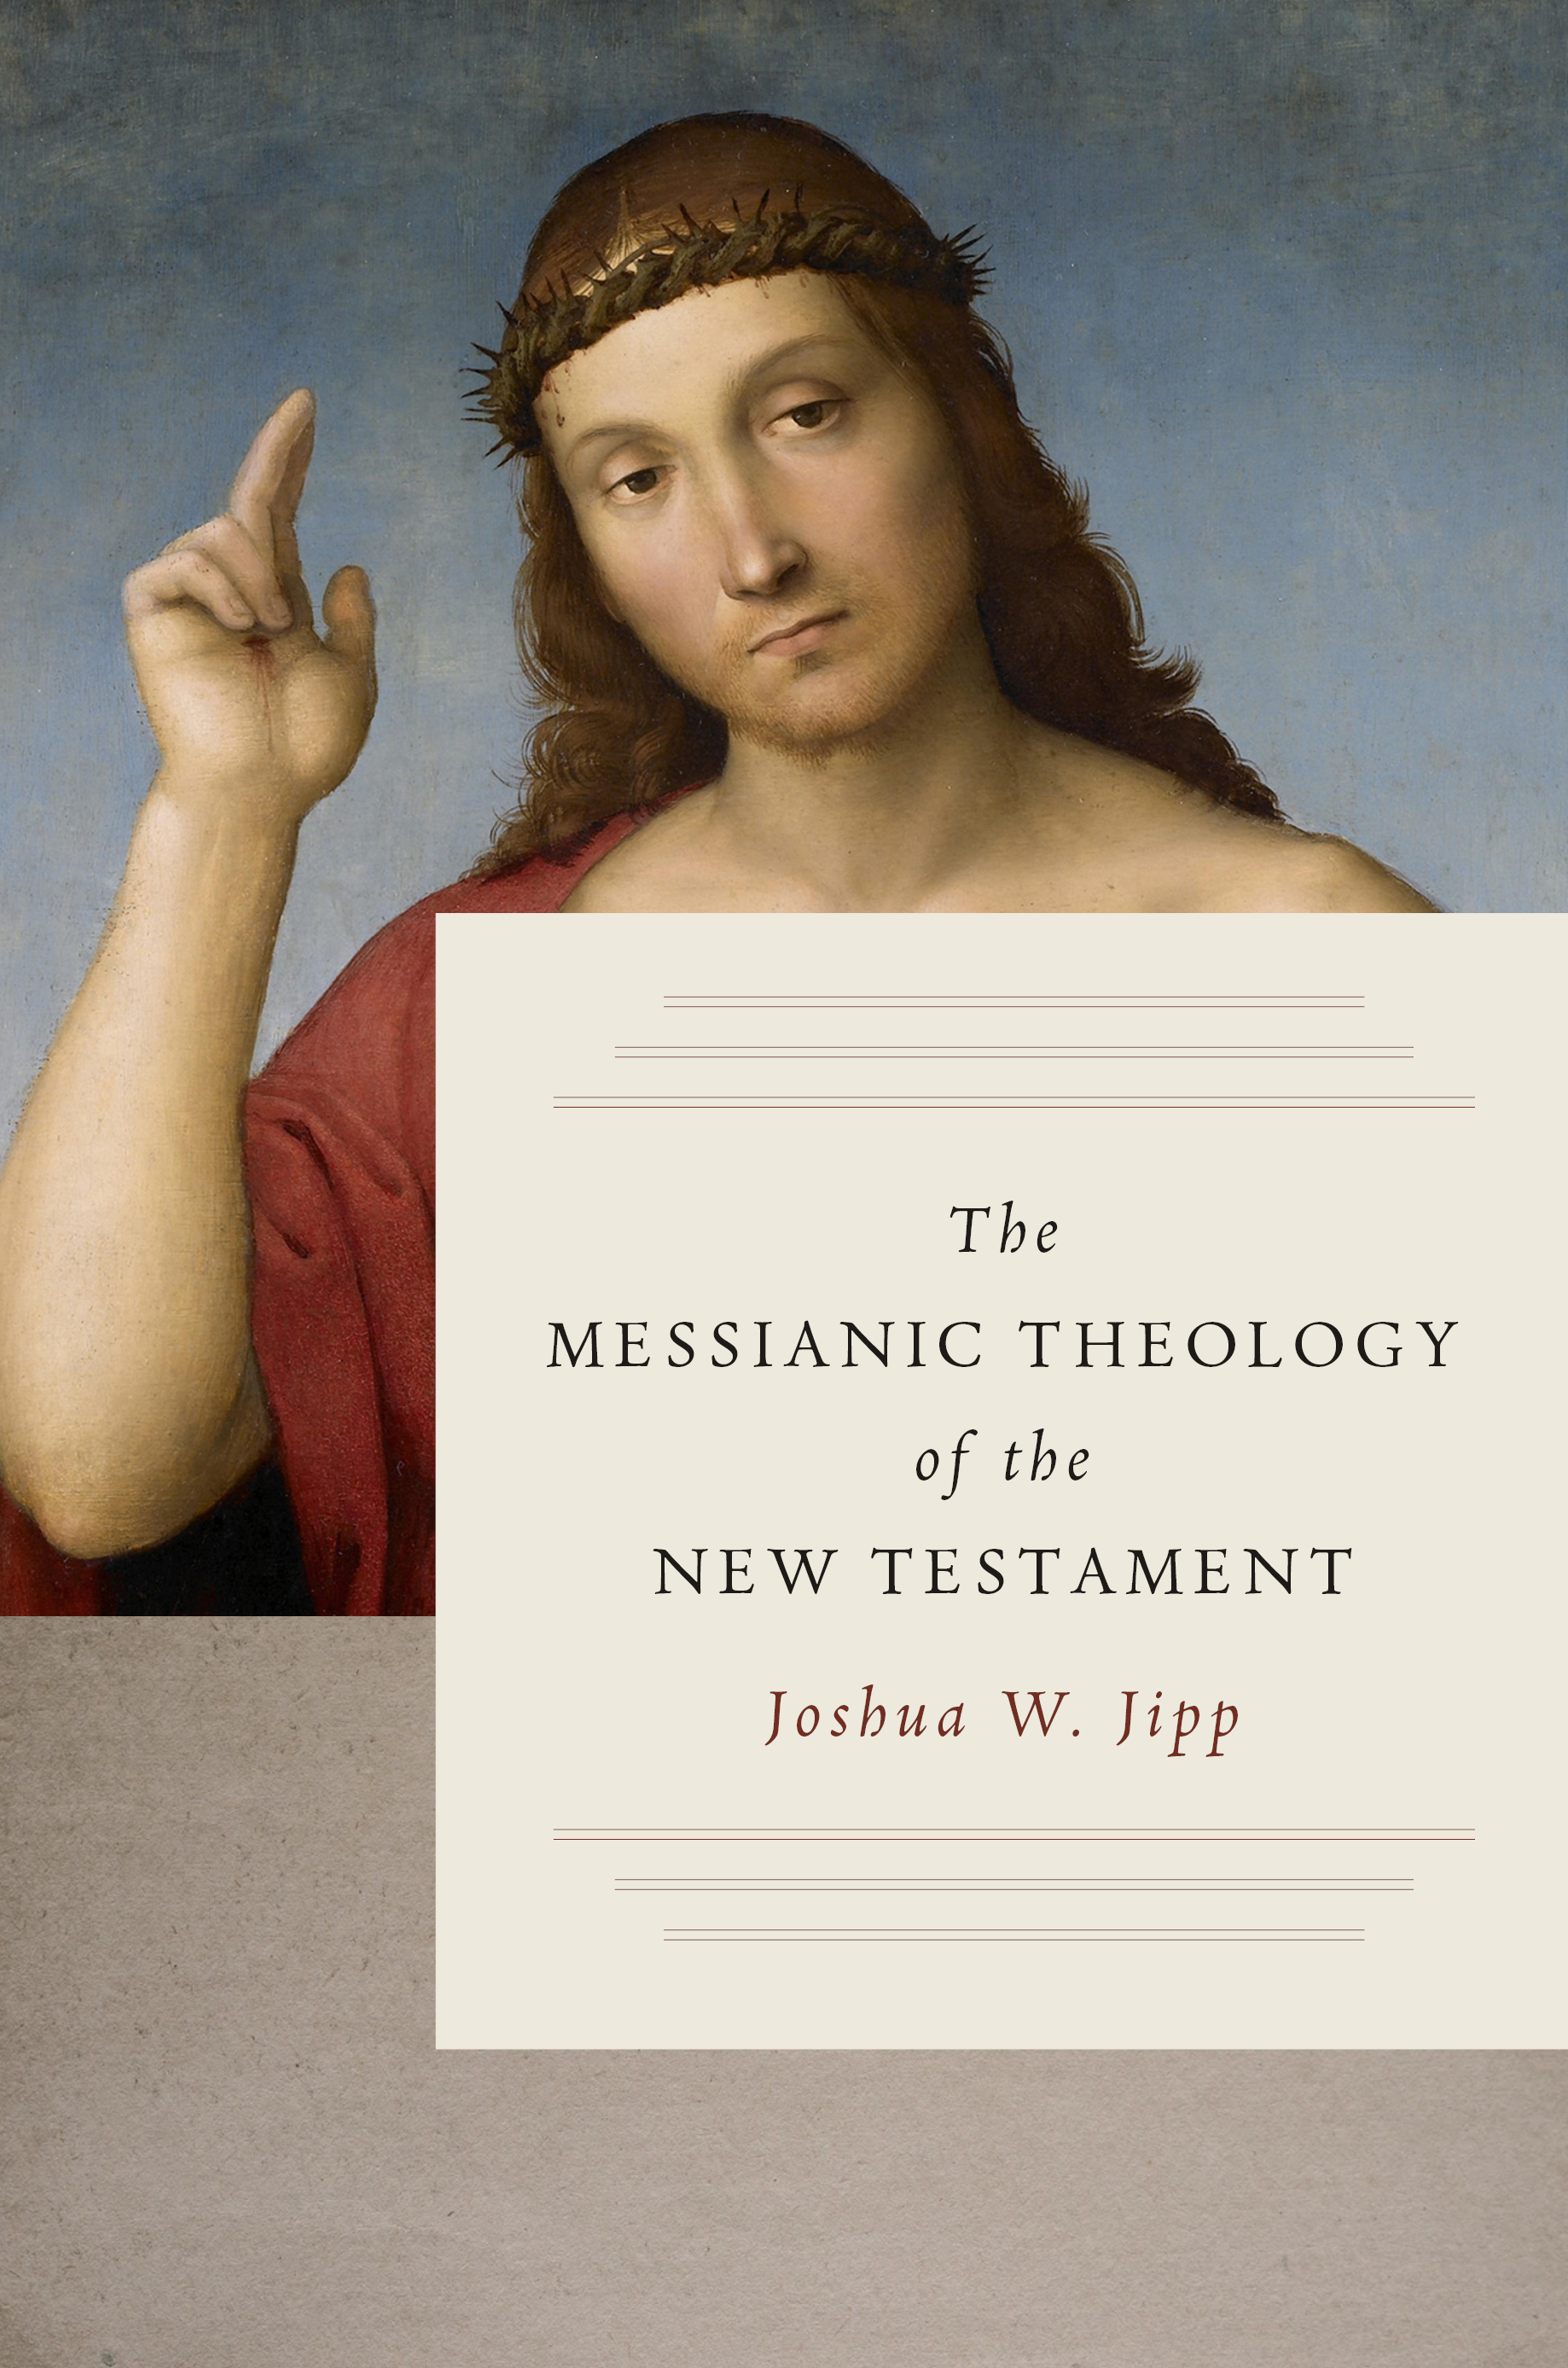 The Messianic Theology of the New Testament